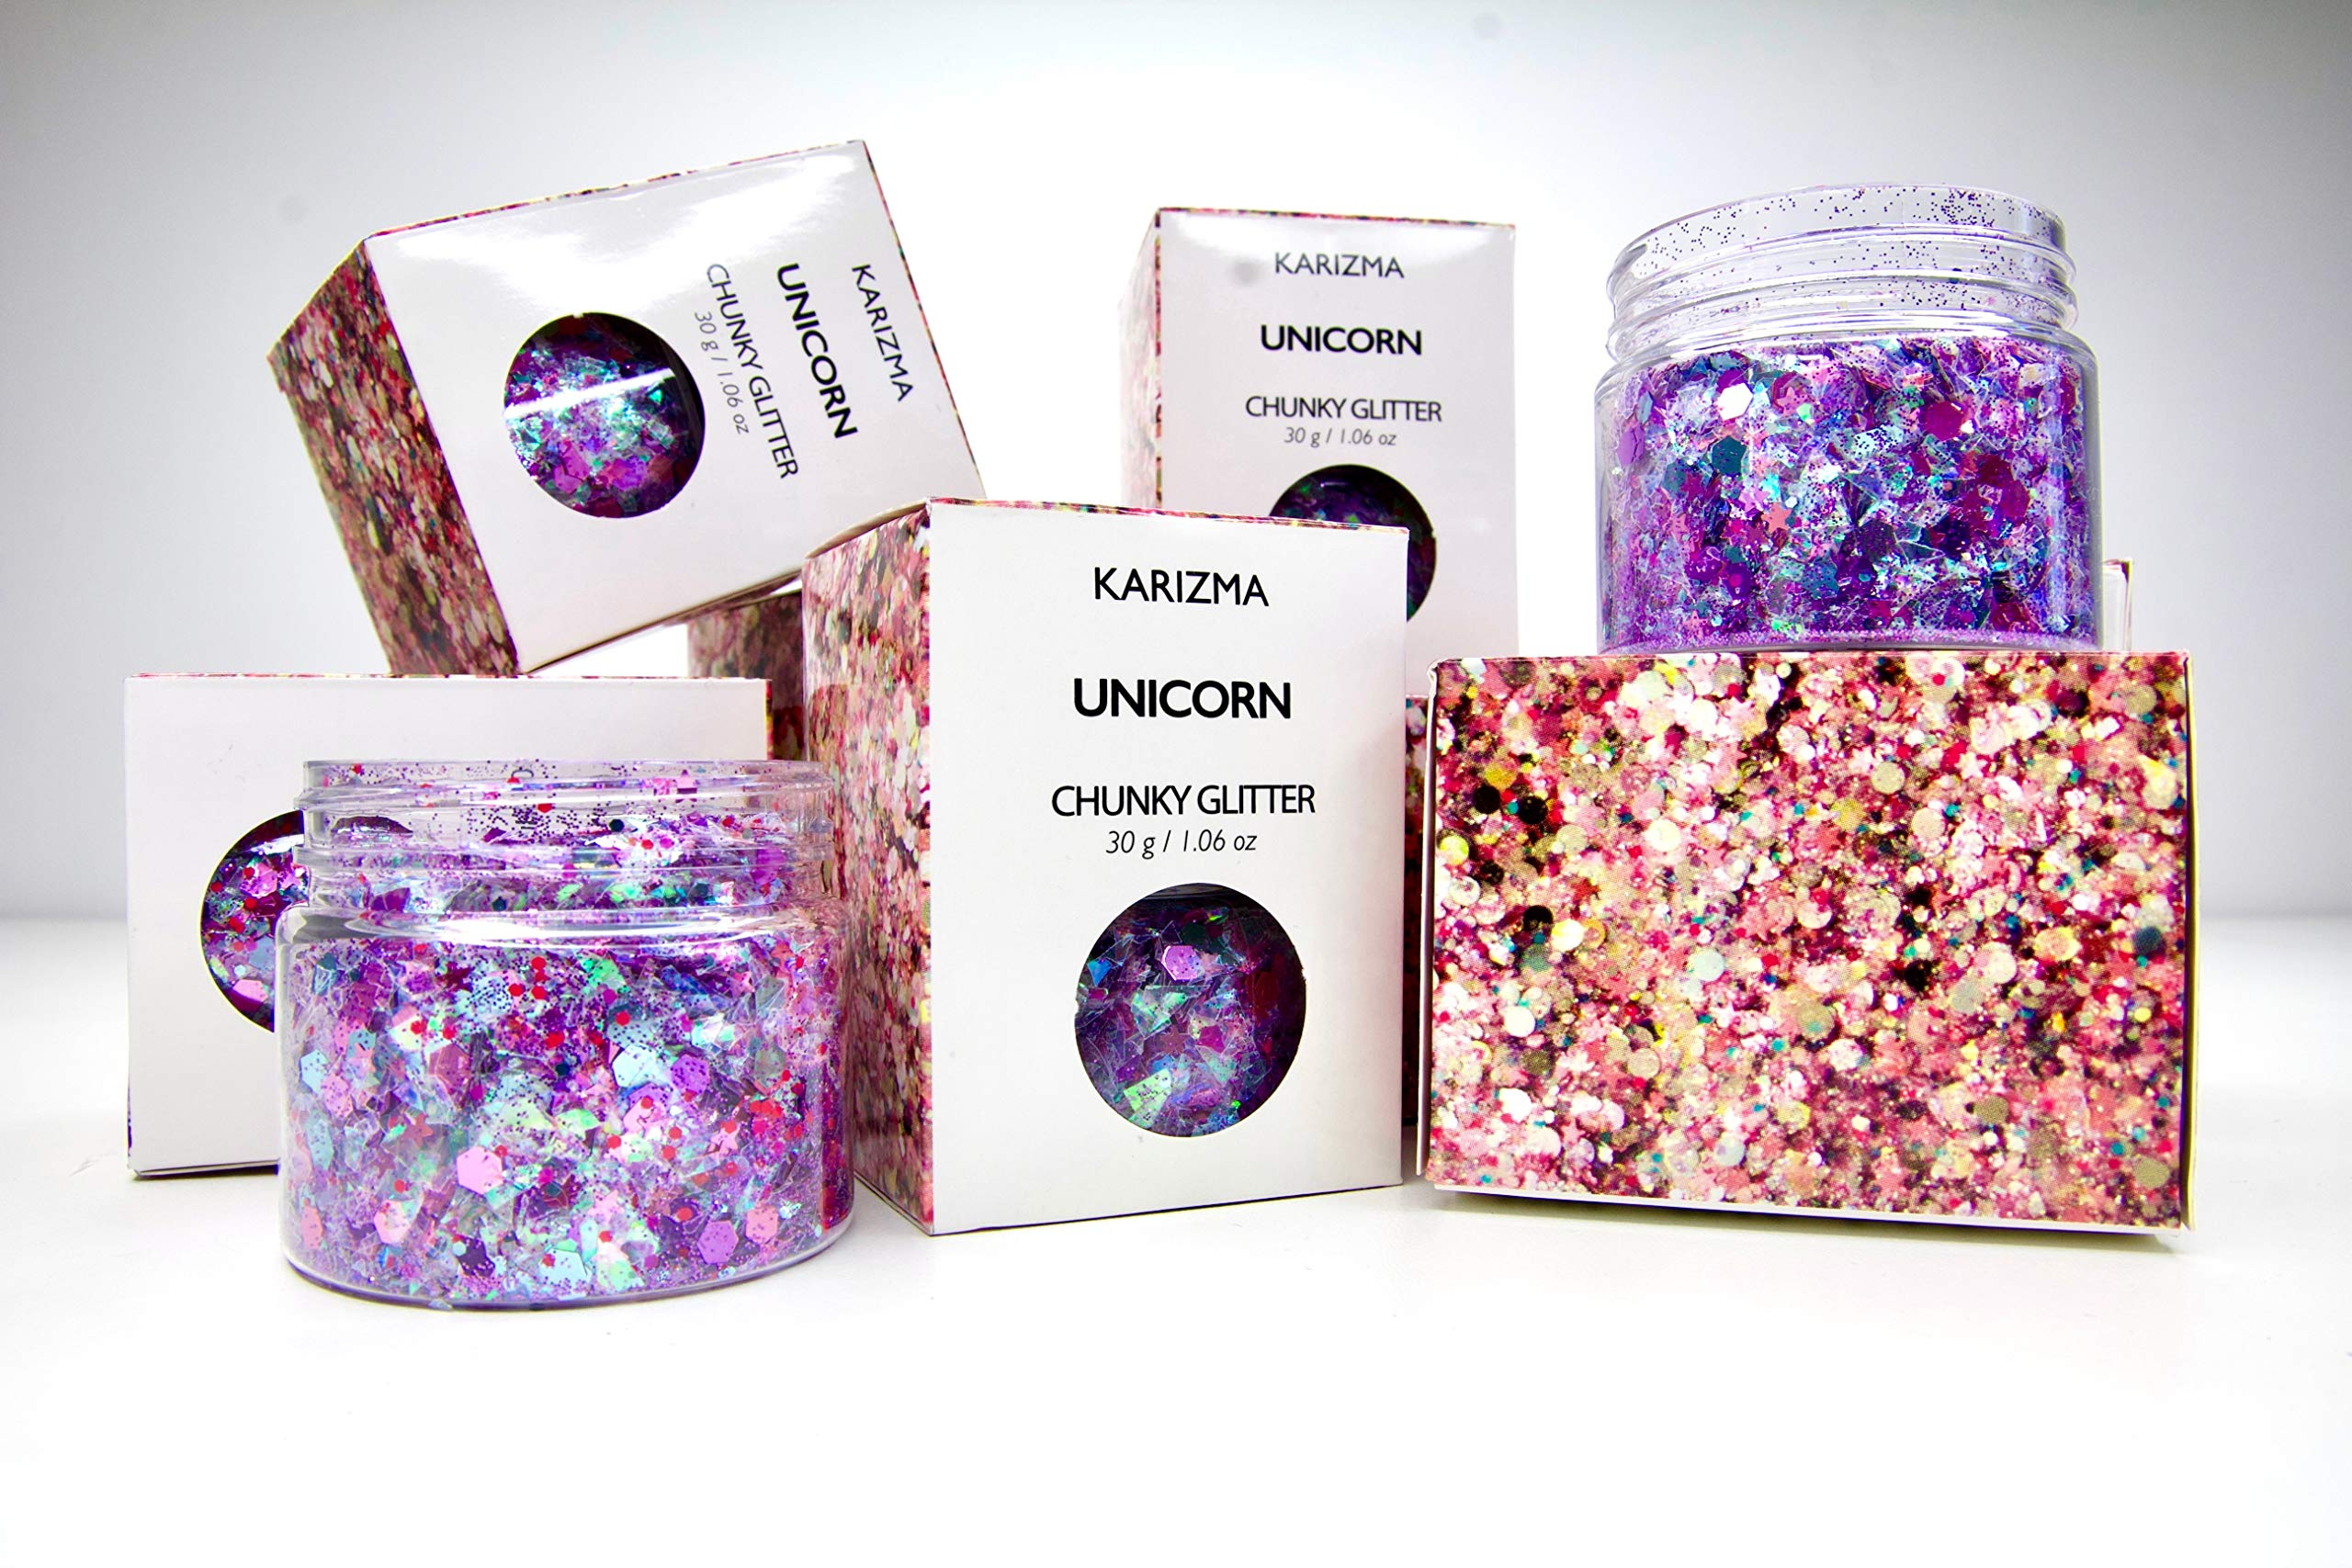 Unicorn Chunky Glitter ✮ Large 30g Jar COSMETIC GLITTER ✮ Festival Face Body Hair Nails by KARIZMA (Image #4)